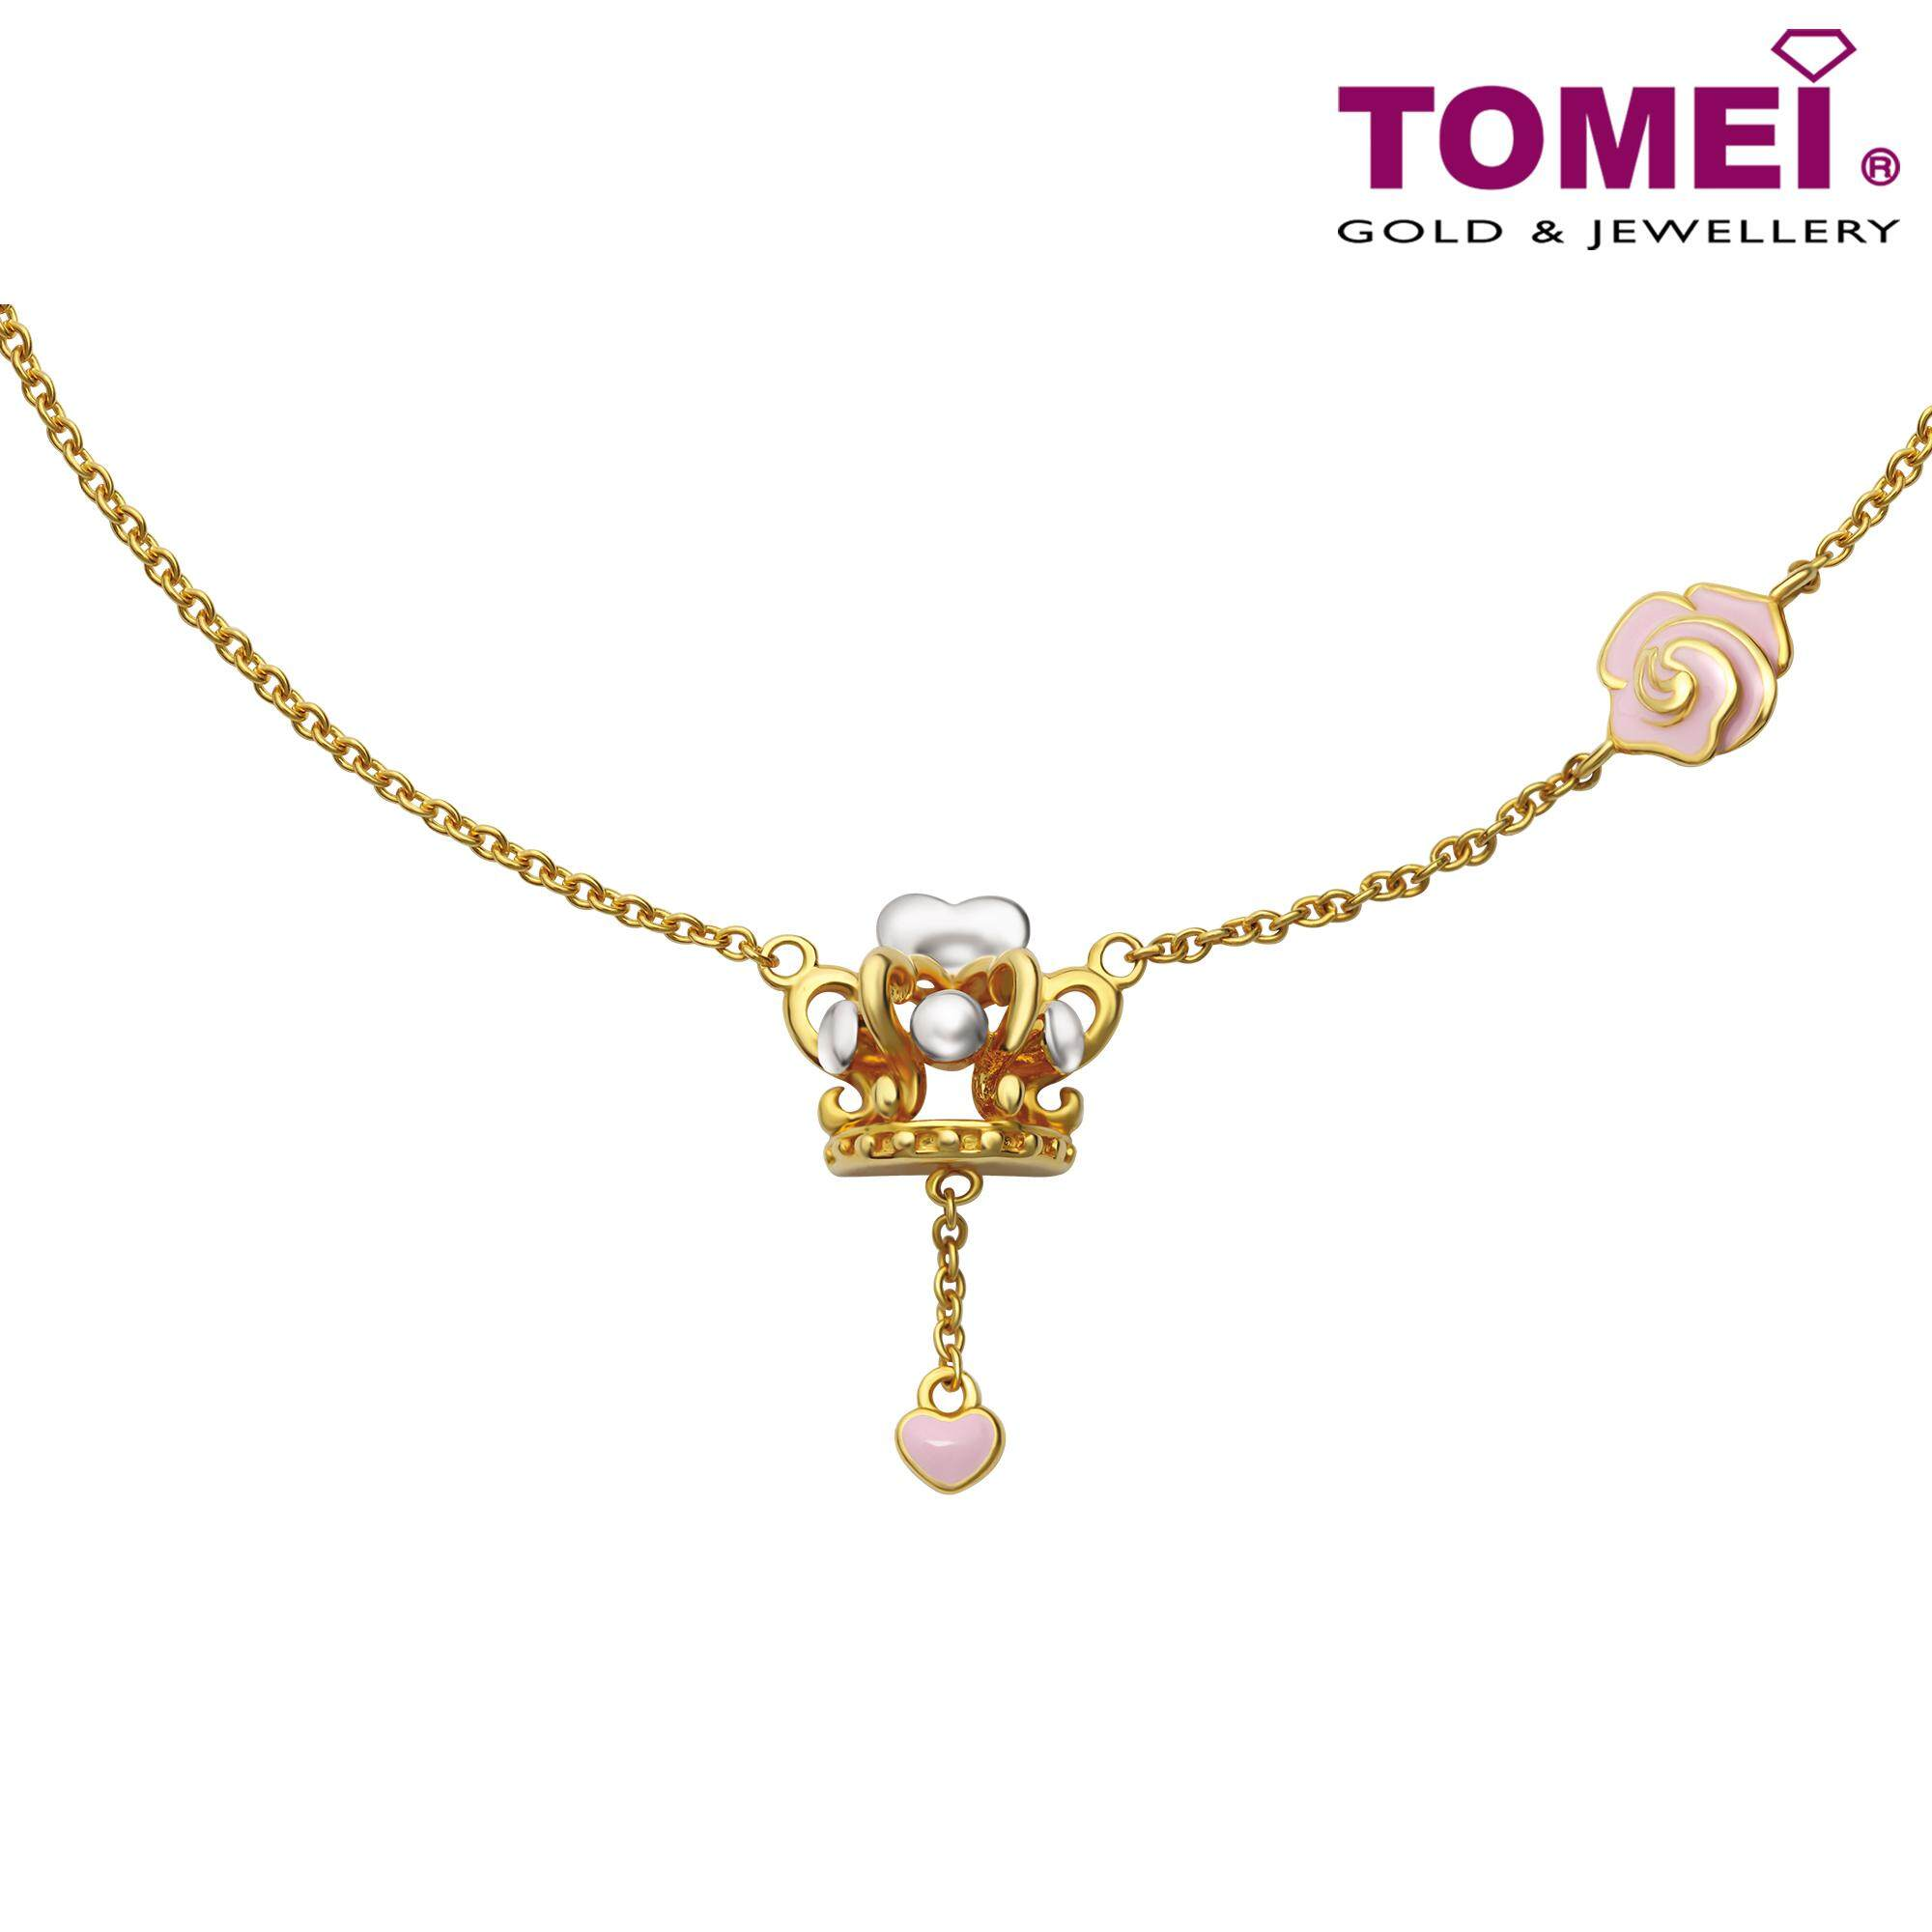 Tomei Jewellery for the Best Price in Malaysia